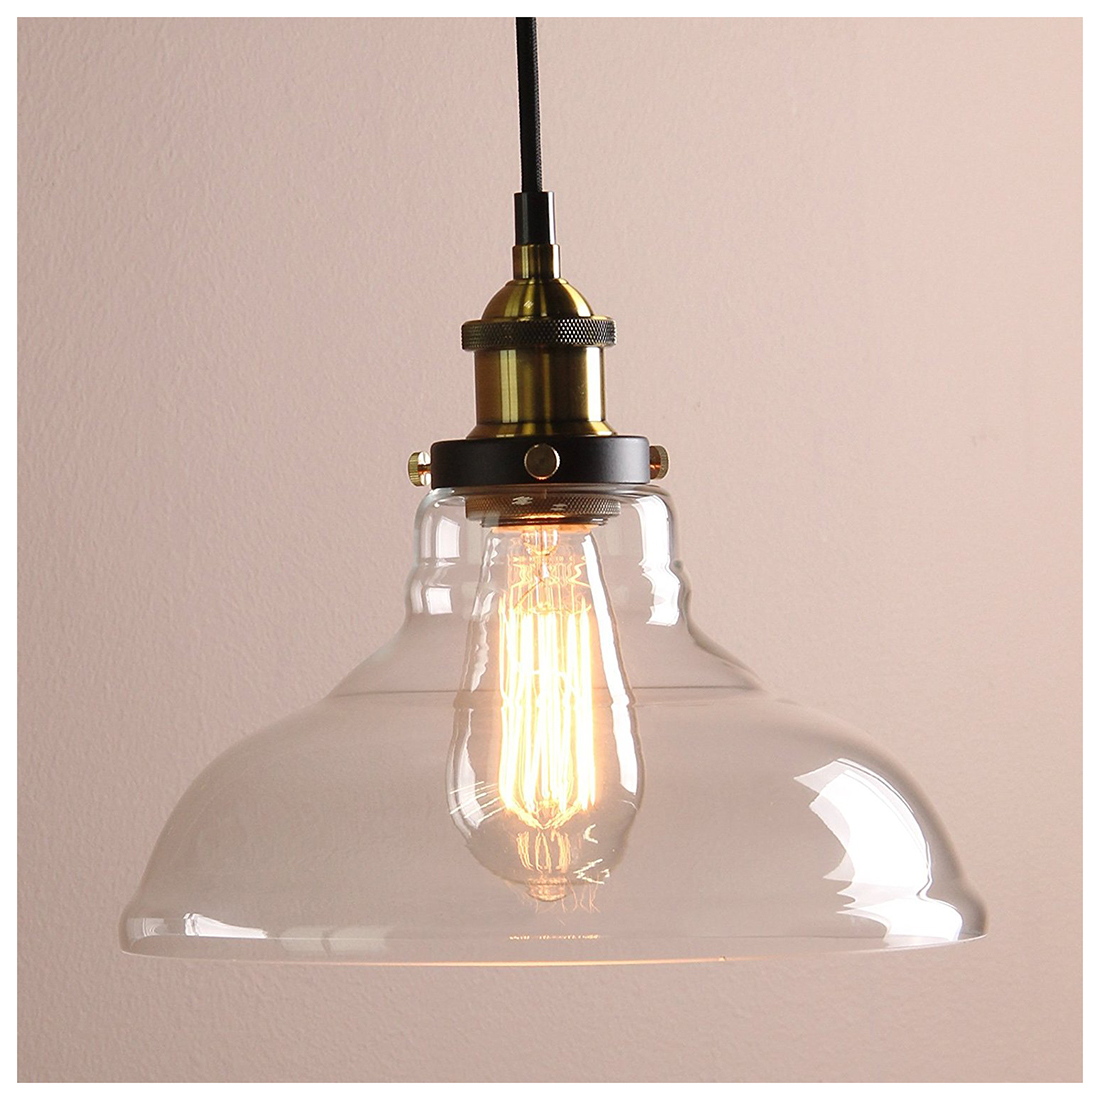 Modern Vintage Amber Industrial 1 Light Iron Body Glass Shade Loft Coffee Bar Kitchen cover Chandeliers Hanging Pendant Lamp L edison loft style vintage light industrial retro pendant lamp light e27 iron restaurant bar counter hanging chandeliers lamp